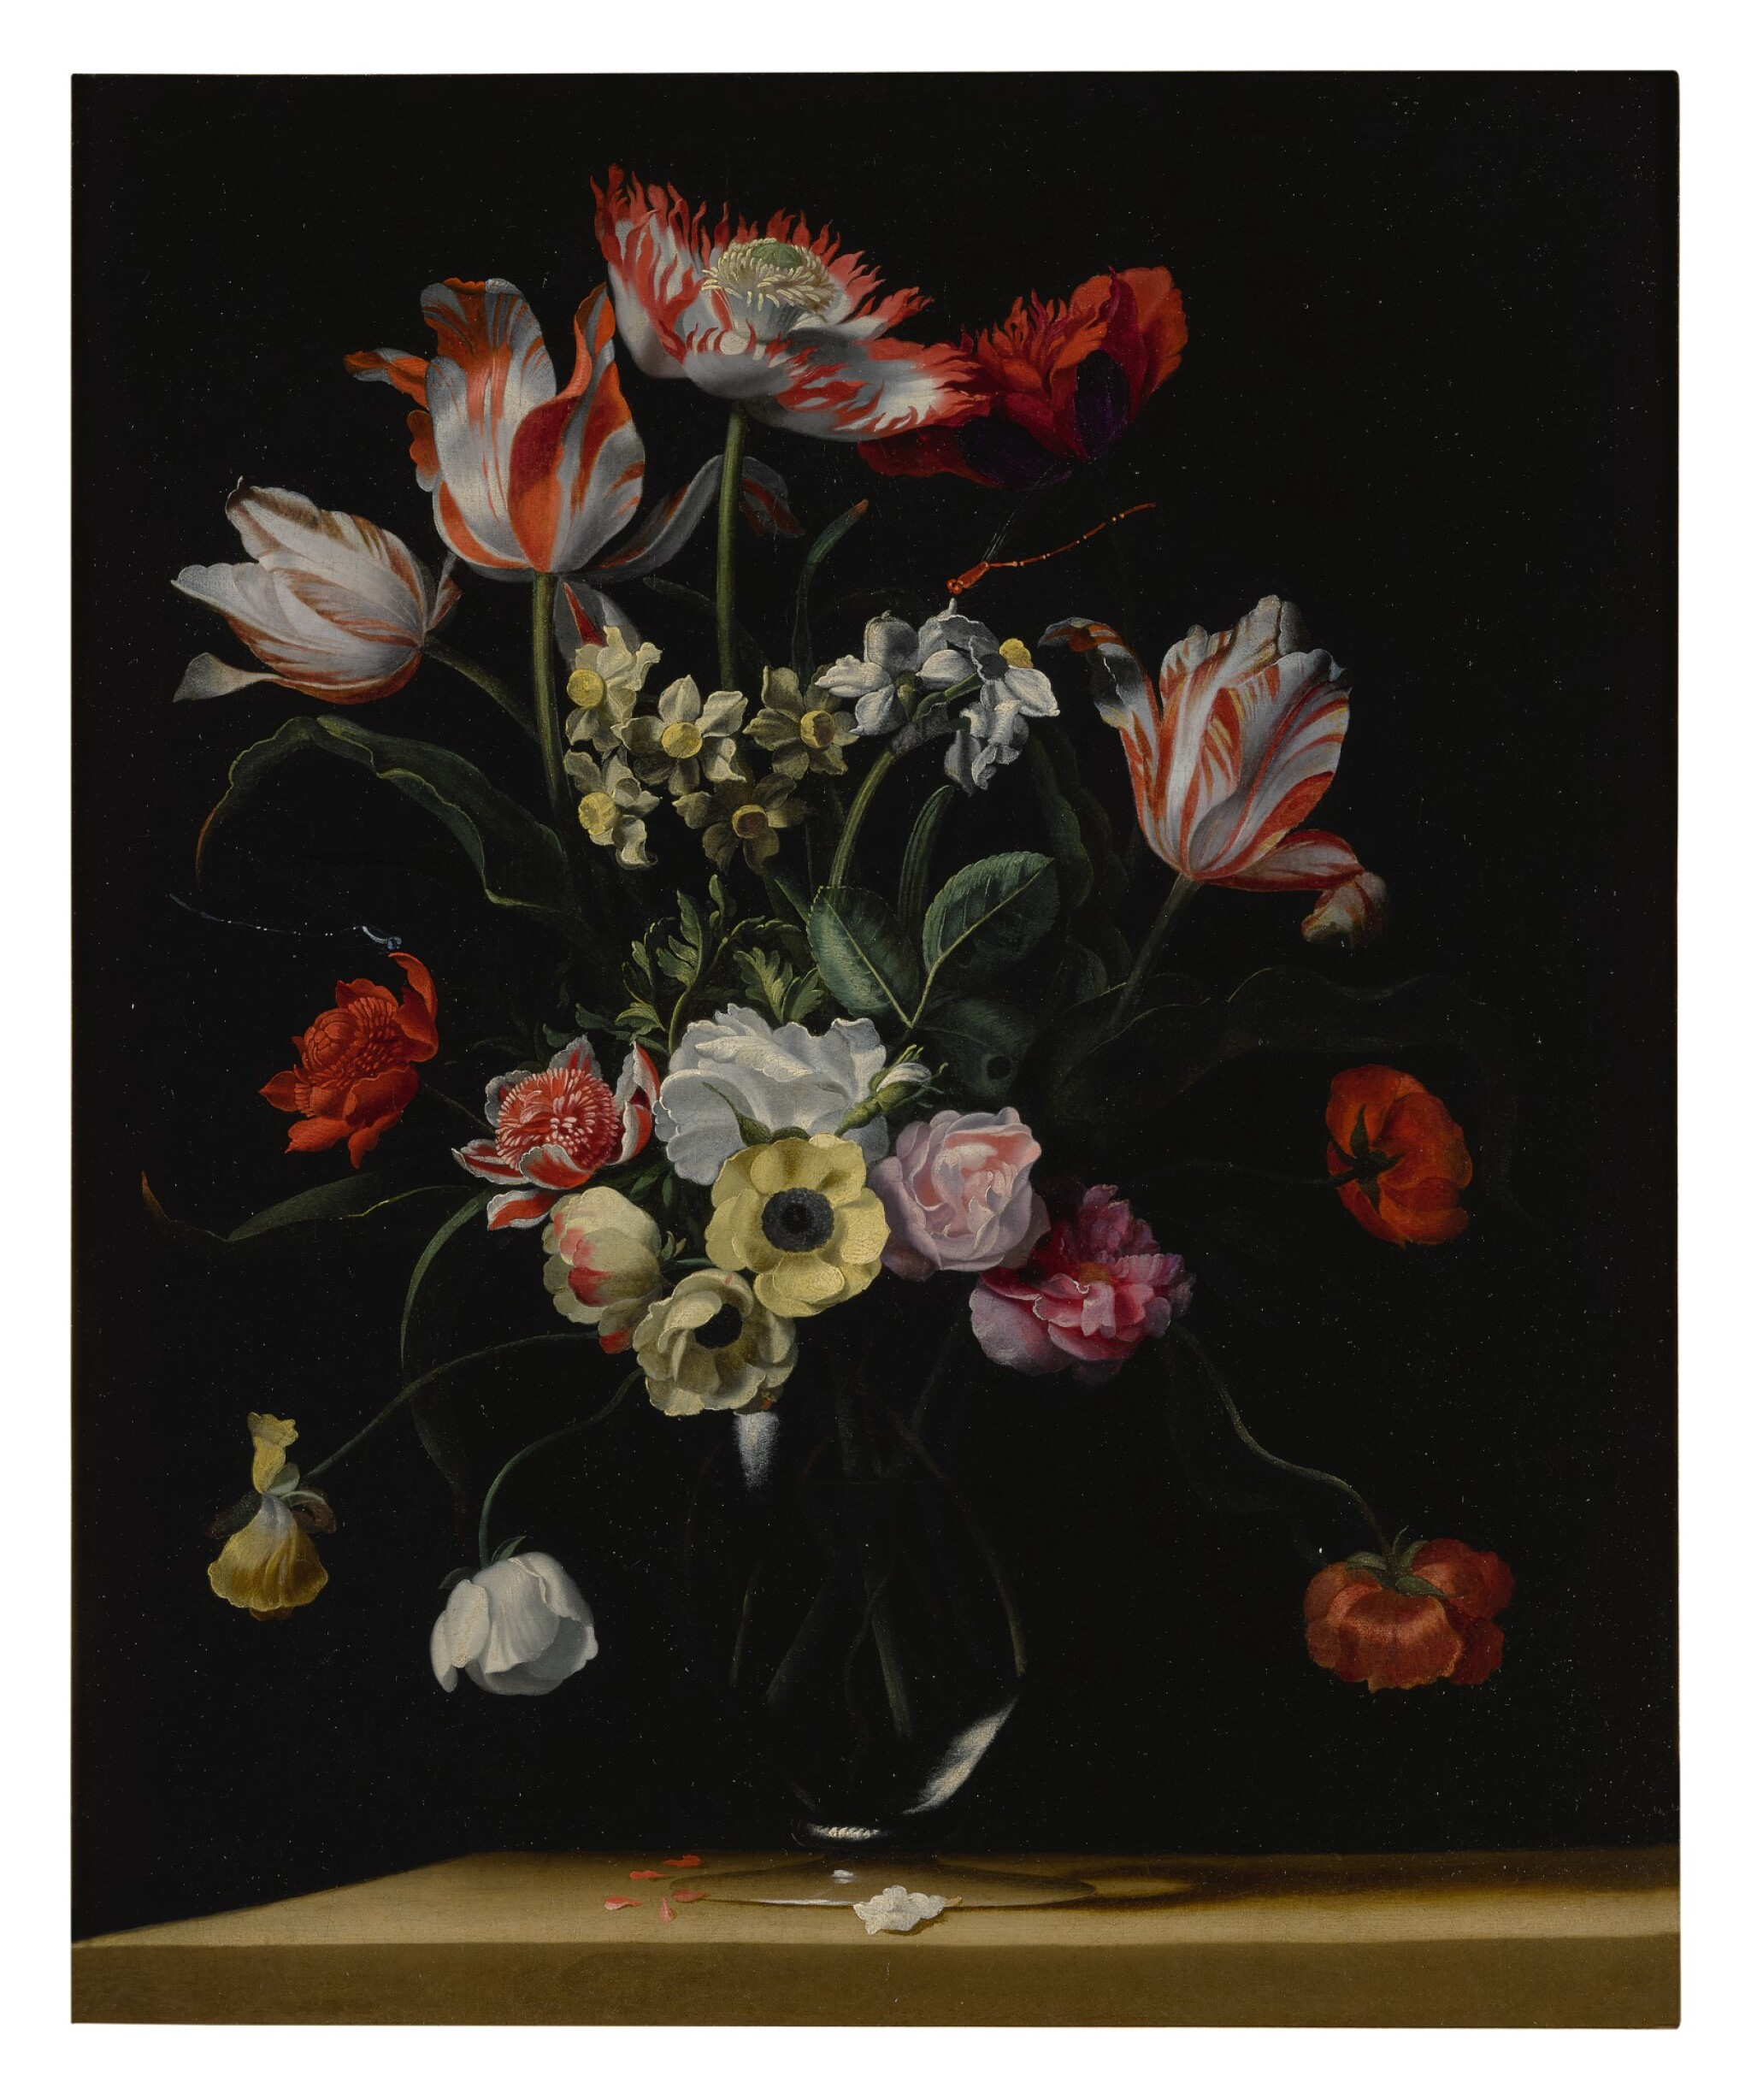 View full screen - View 1 of Lot 143. JEAN-MICHEL PICART     TULIPS, DAFFODILS, CARNATIONS, POPPIES, ANEMONES, AND OTHER FLOWERS IN A GLASS VASE ON A WOODEN LEDGE;  TULIPS, LILIES, DAFFODILS, LILACS, AND OTHER FLOWERS IN A GLASS VASE ON A WOODEN LEDGE: A PAIR.